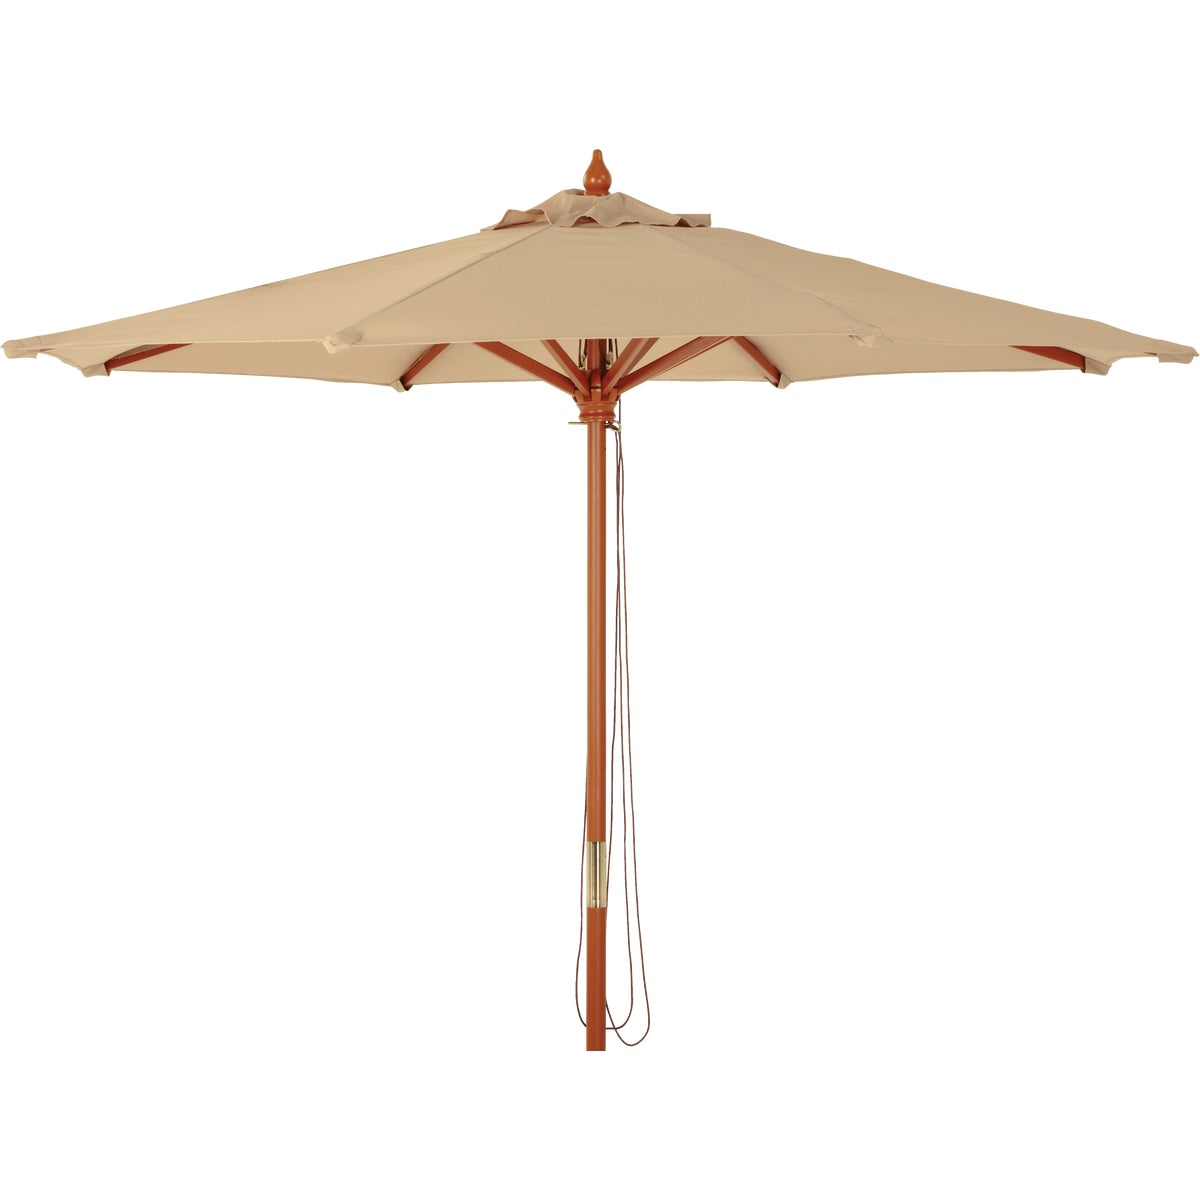 7.5' MARKET TAN UMBRELLA